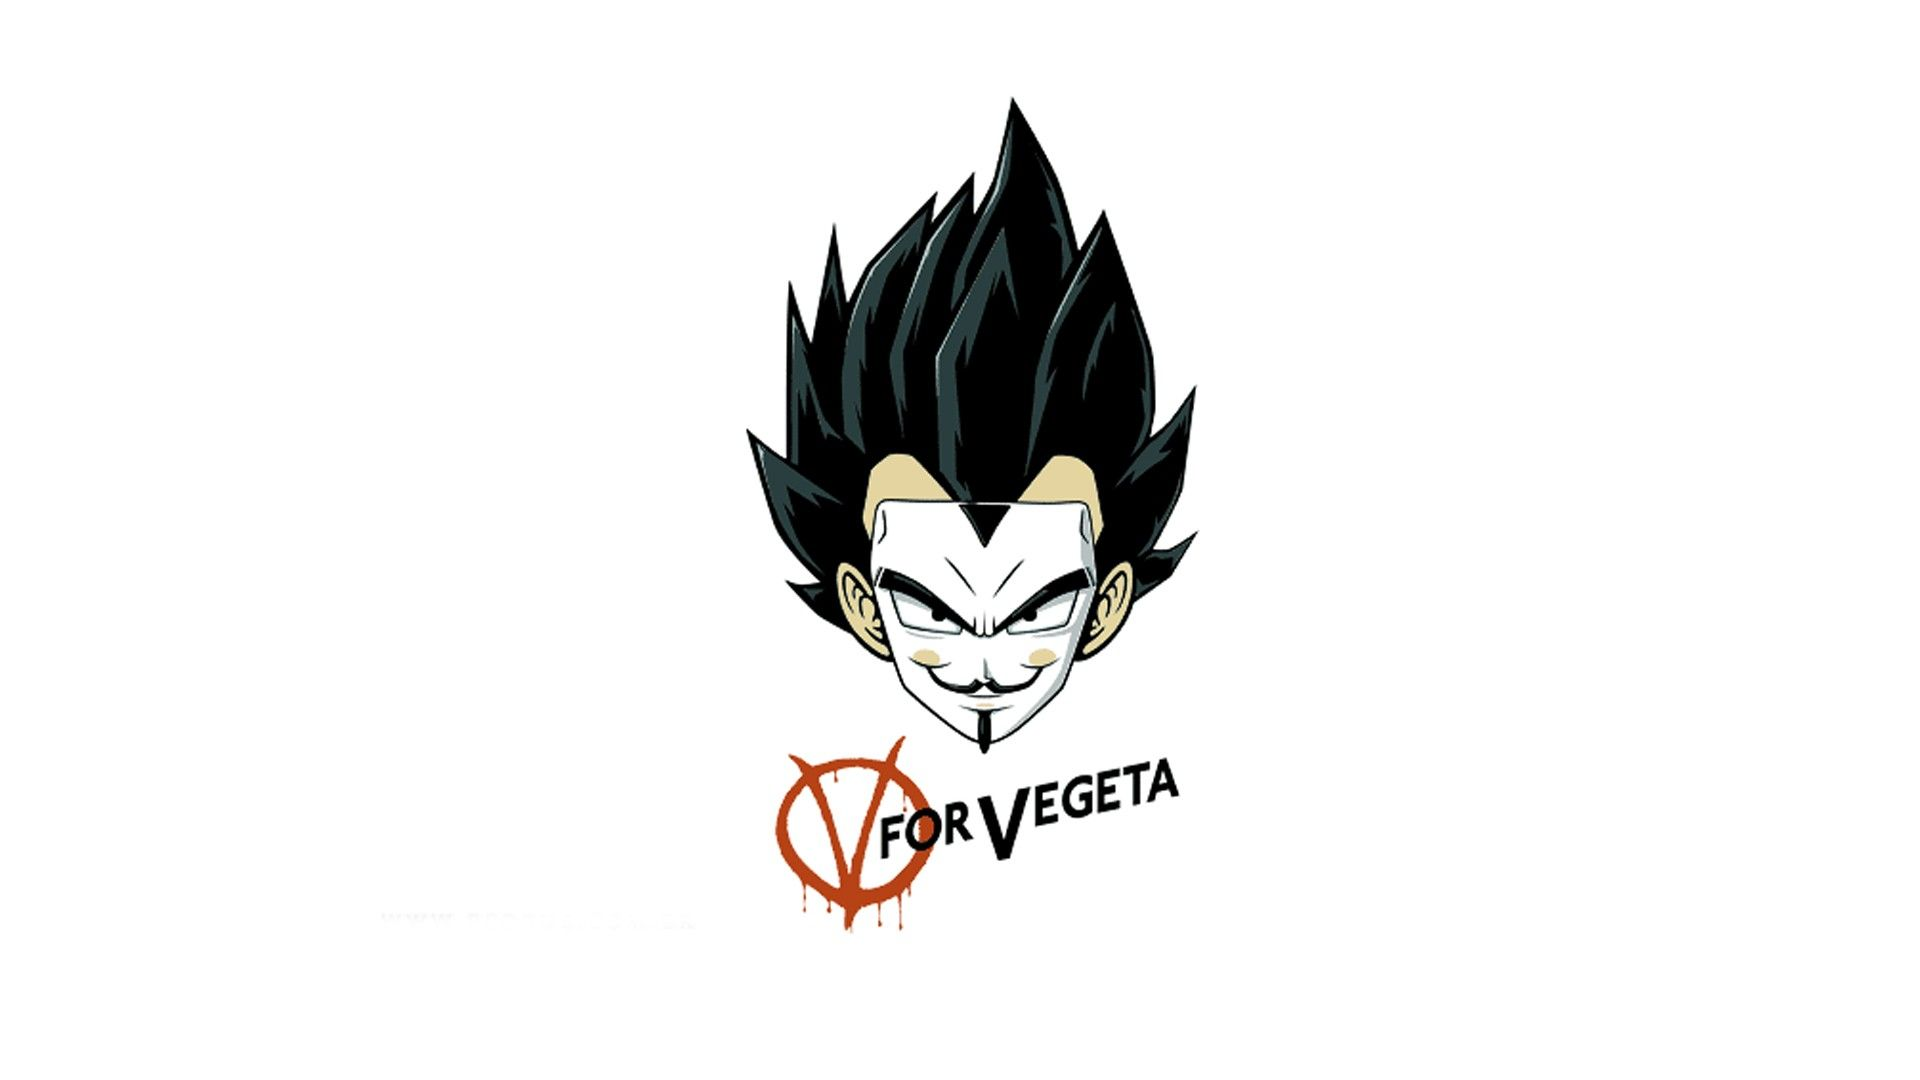 30 Backgrounds In High Quality Vegeta By Kgosi Ketch